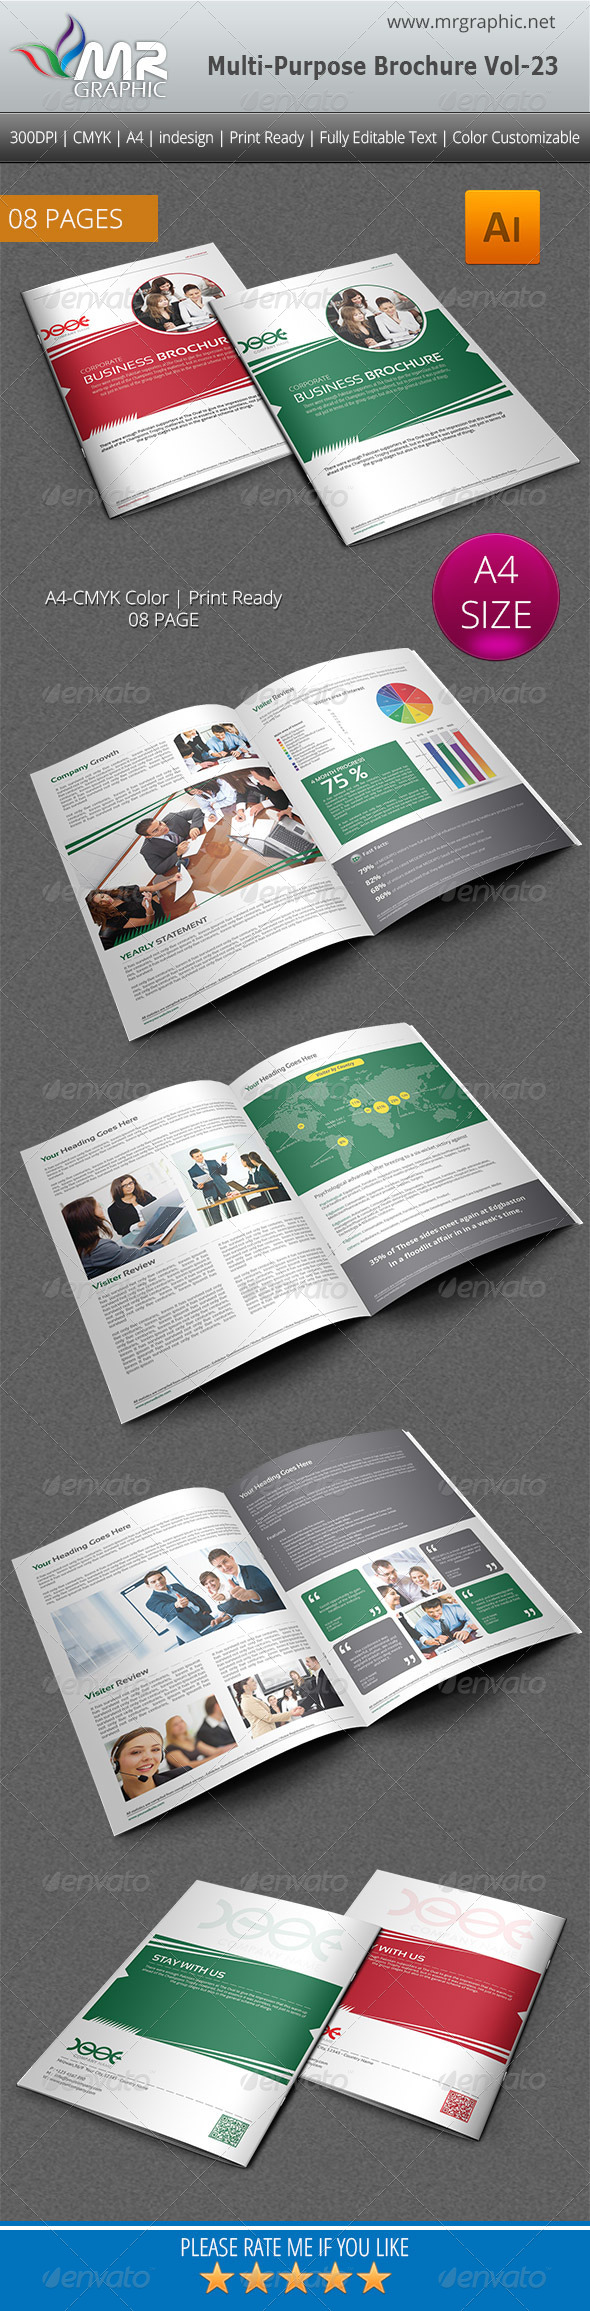 Multipurpose Business Brochure Template Vol-23 - Corporate Brochures